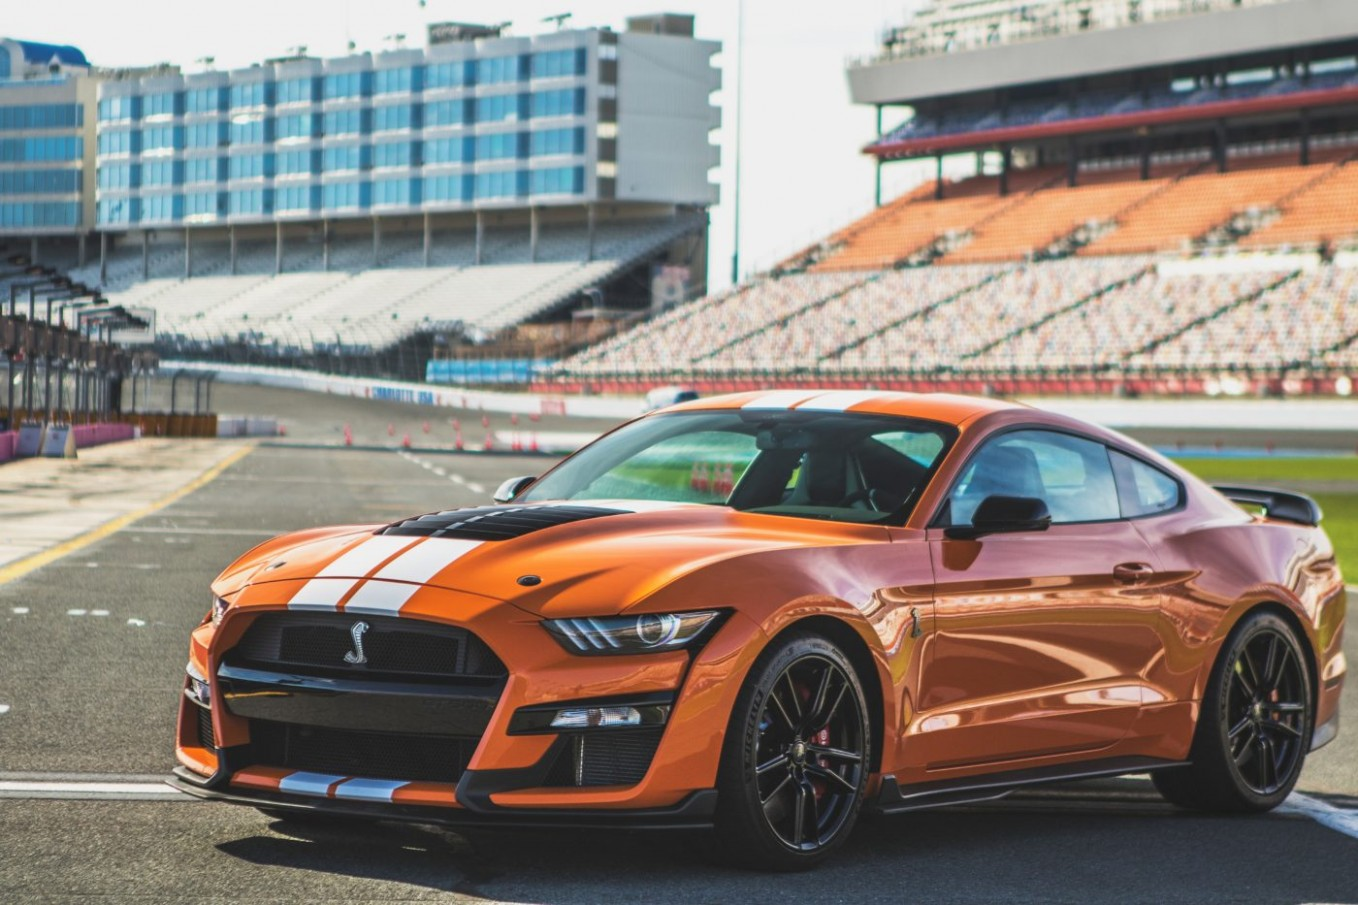 5 Ford Mustang Shelby GT 5 Includes Driver Training